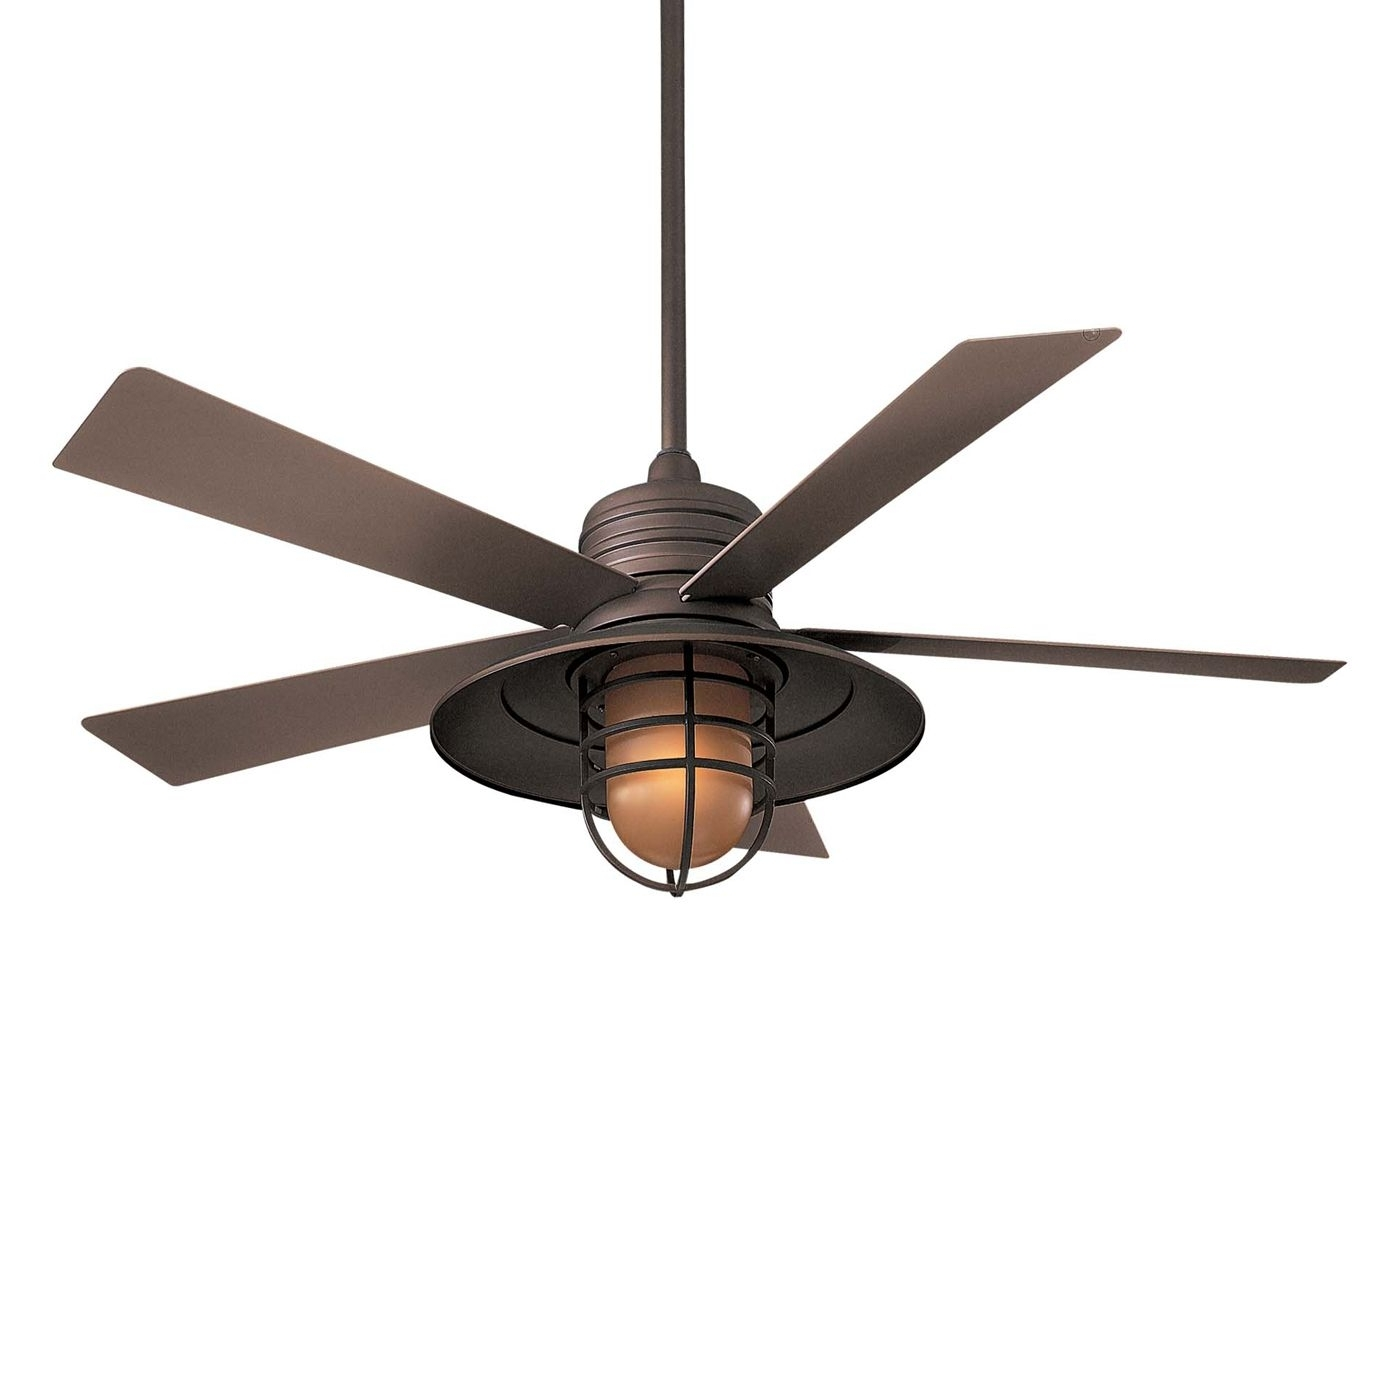 Minka Aire Outdoor Ceiling Fans With Lights Throughout Current Minka Aire F582 54 In Rainman™ Indoor/outdoor Ceiling Fan At Atg (View 9 of 20)